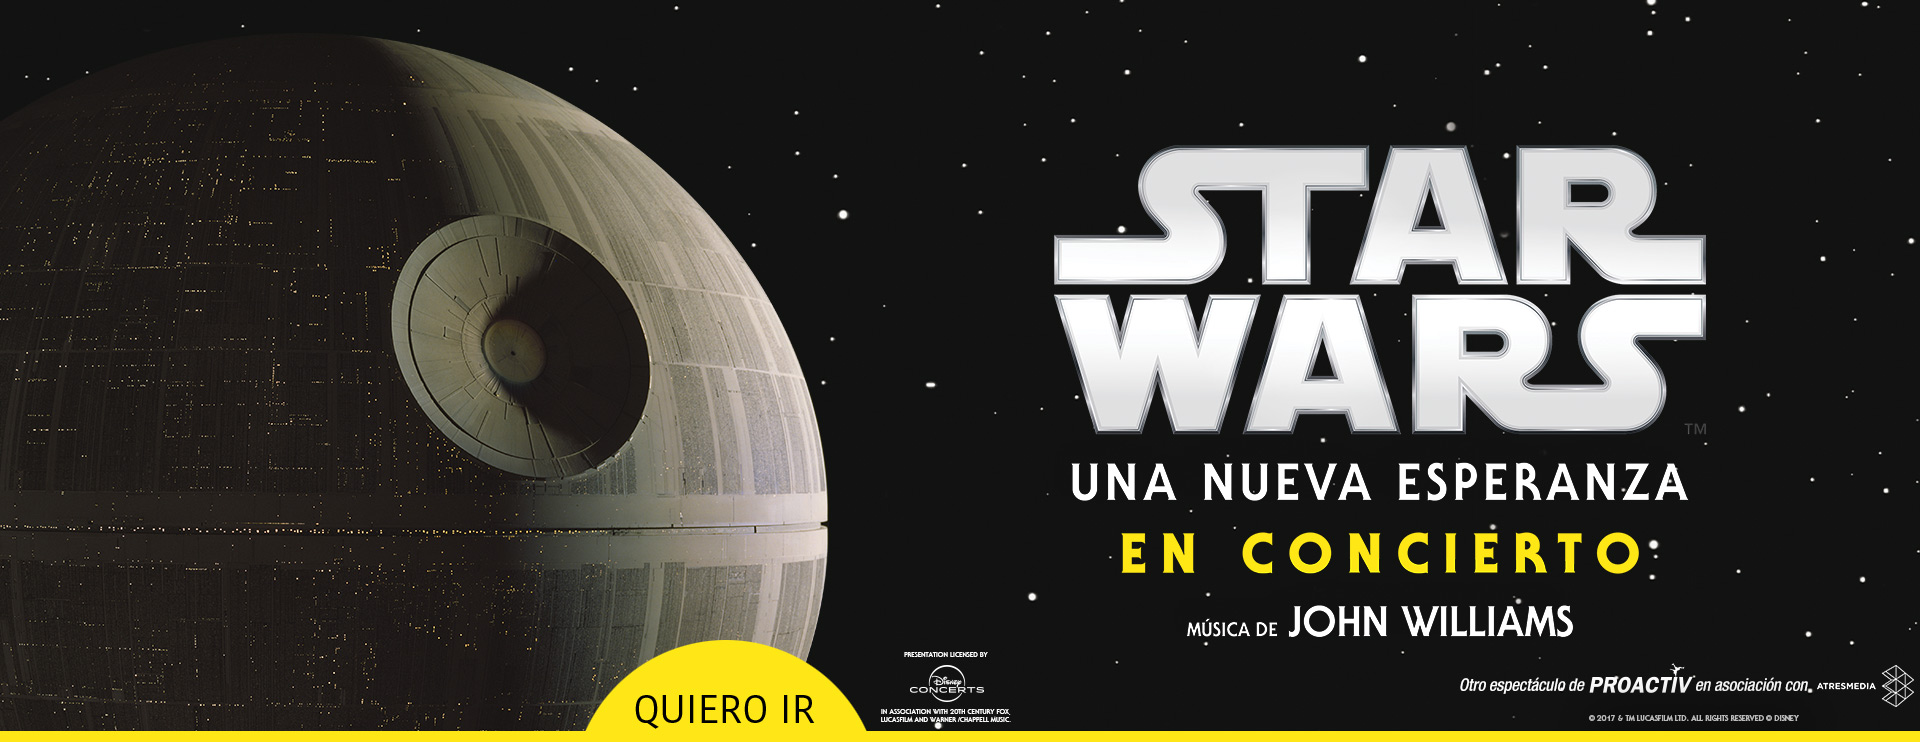 Star Wars - Episodio IV